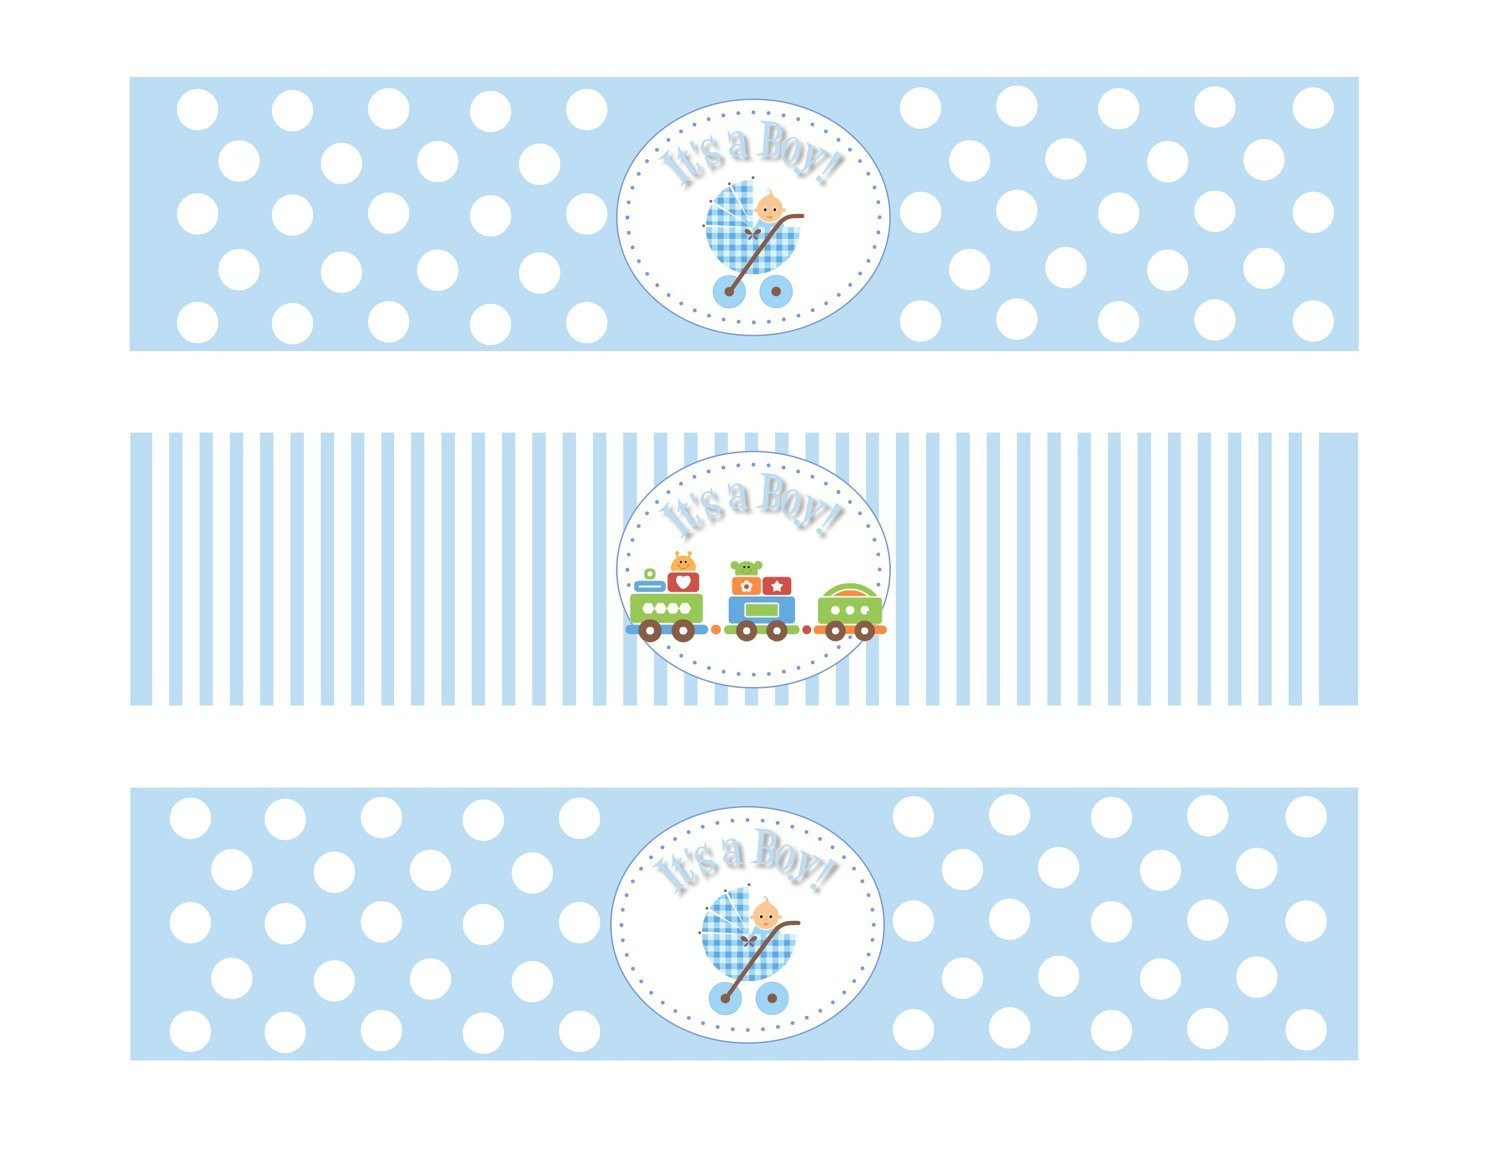 Free Printable Water Bottle Labels For Baby Shower Image Random - Free Printable Water Bottle Labels For Baby Shower